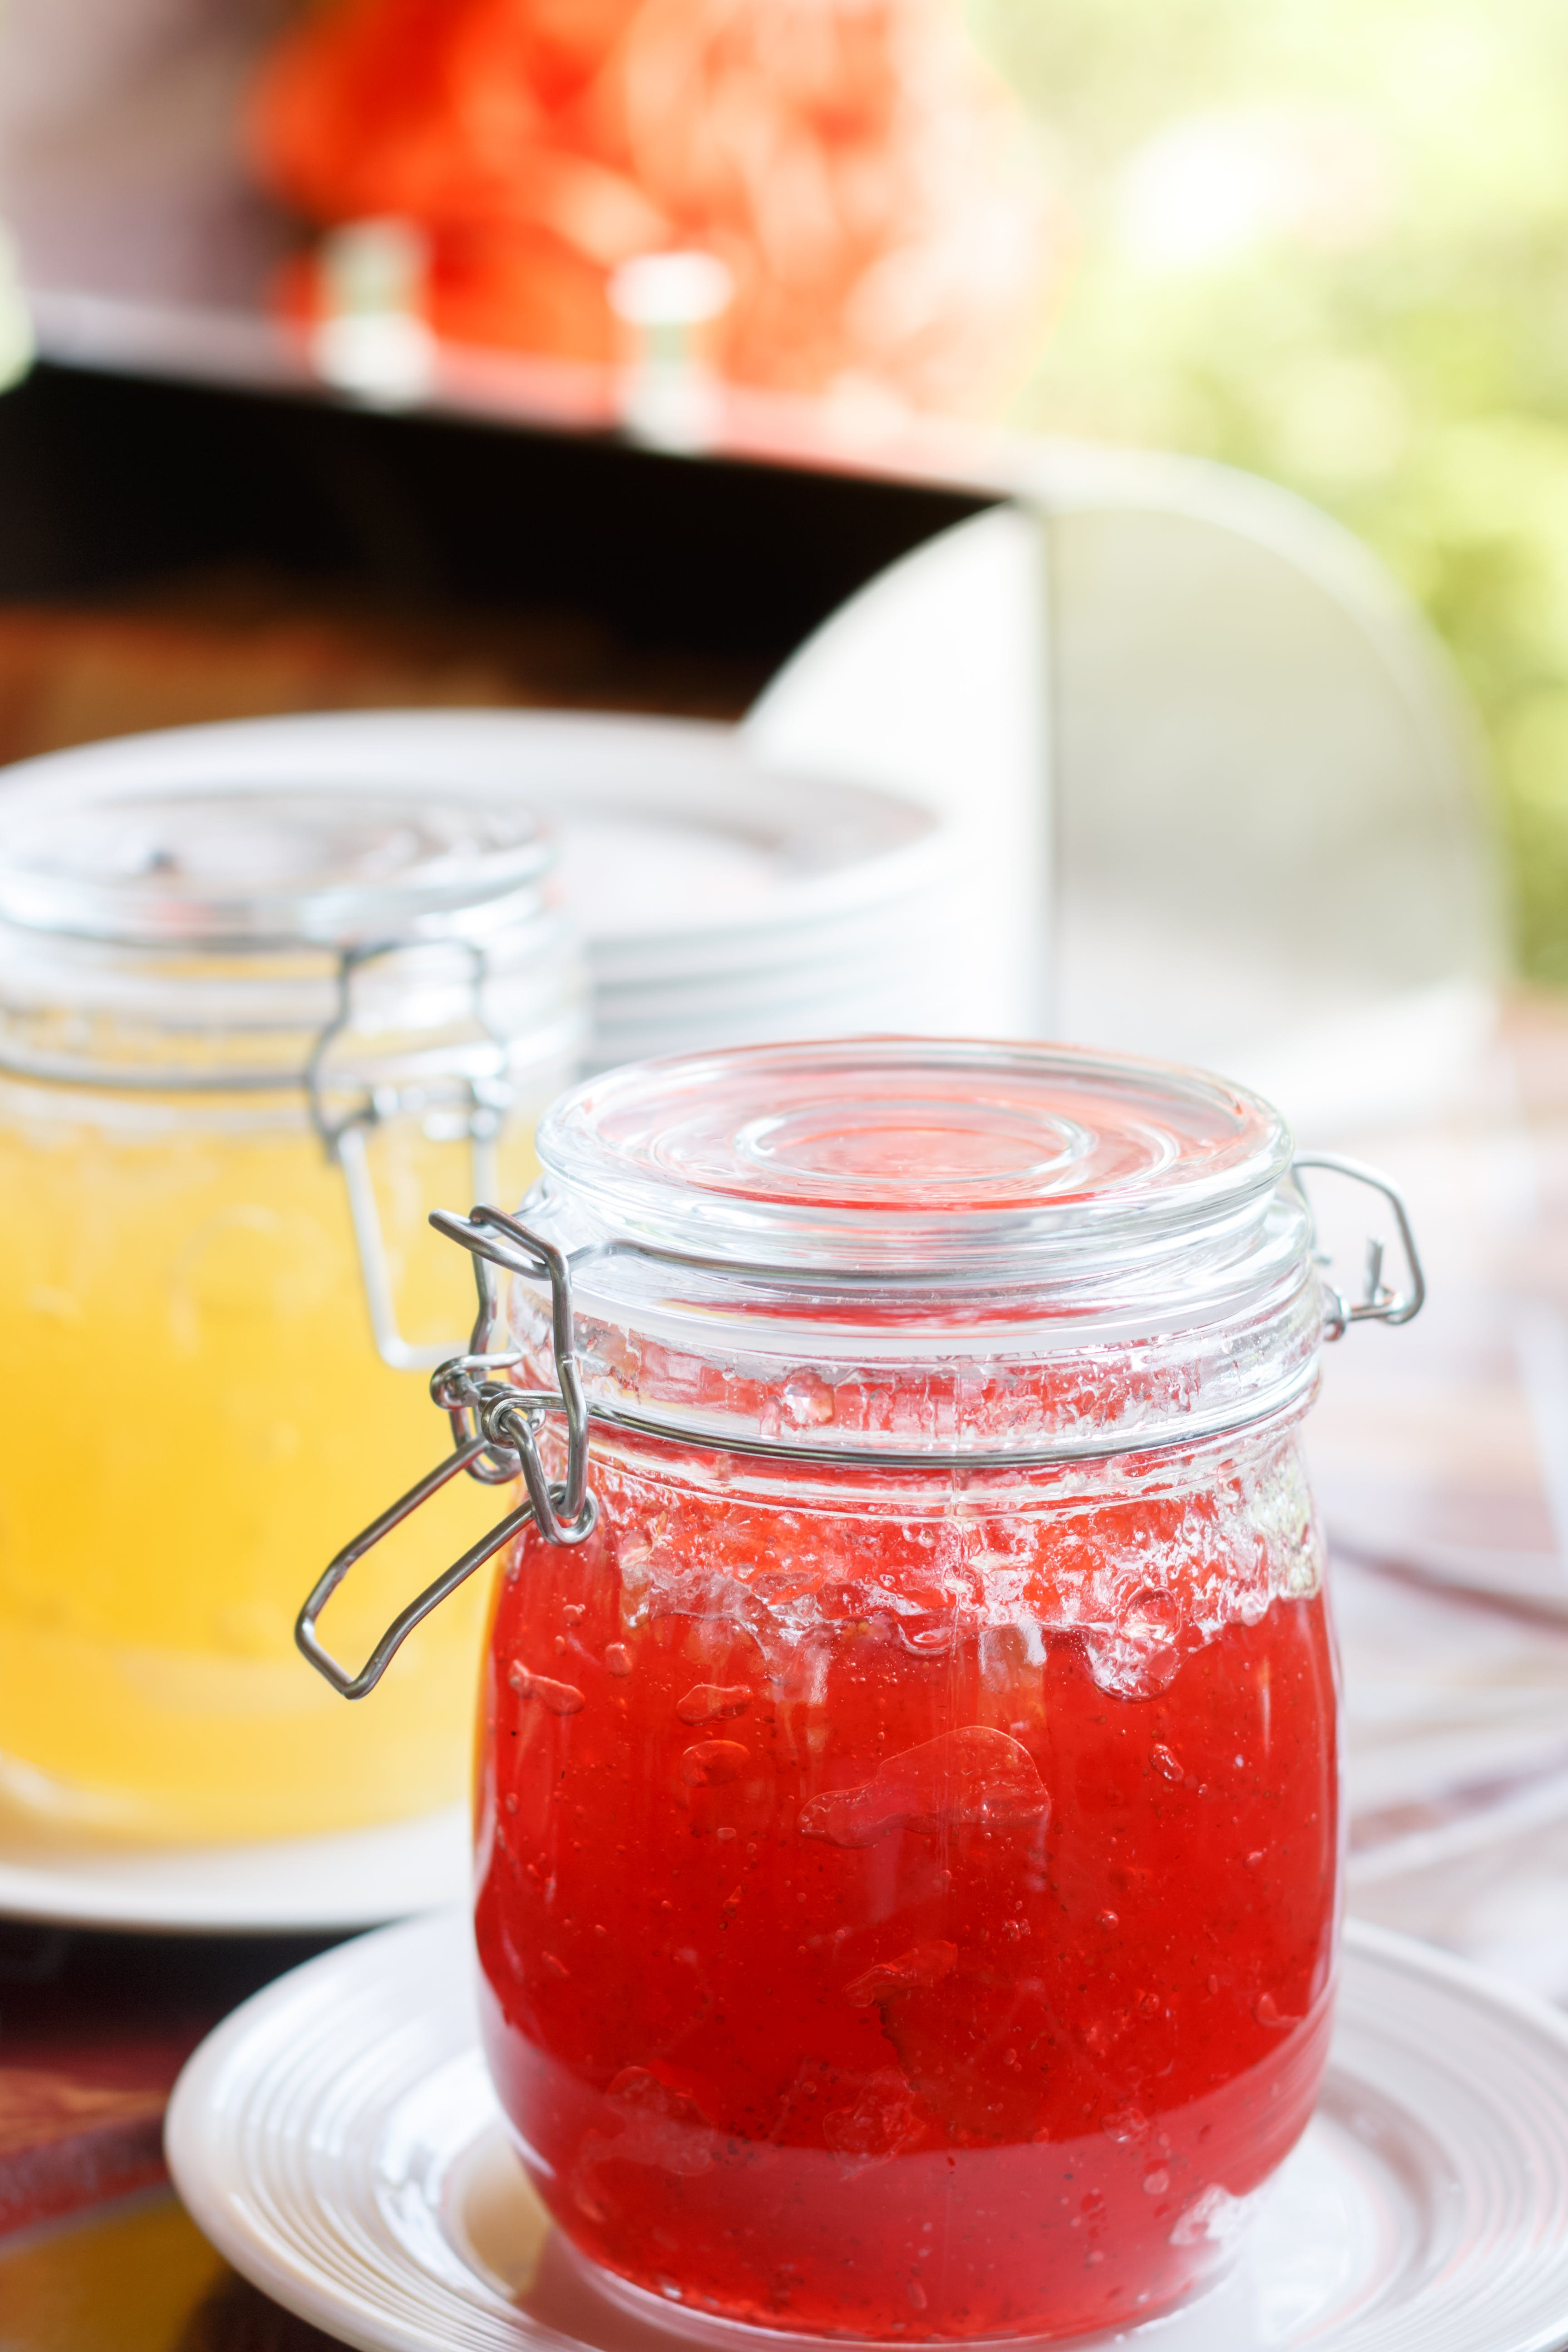 Jar With Red Jam on White Sauer